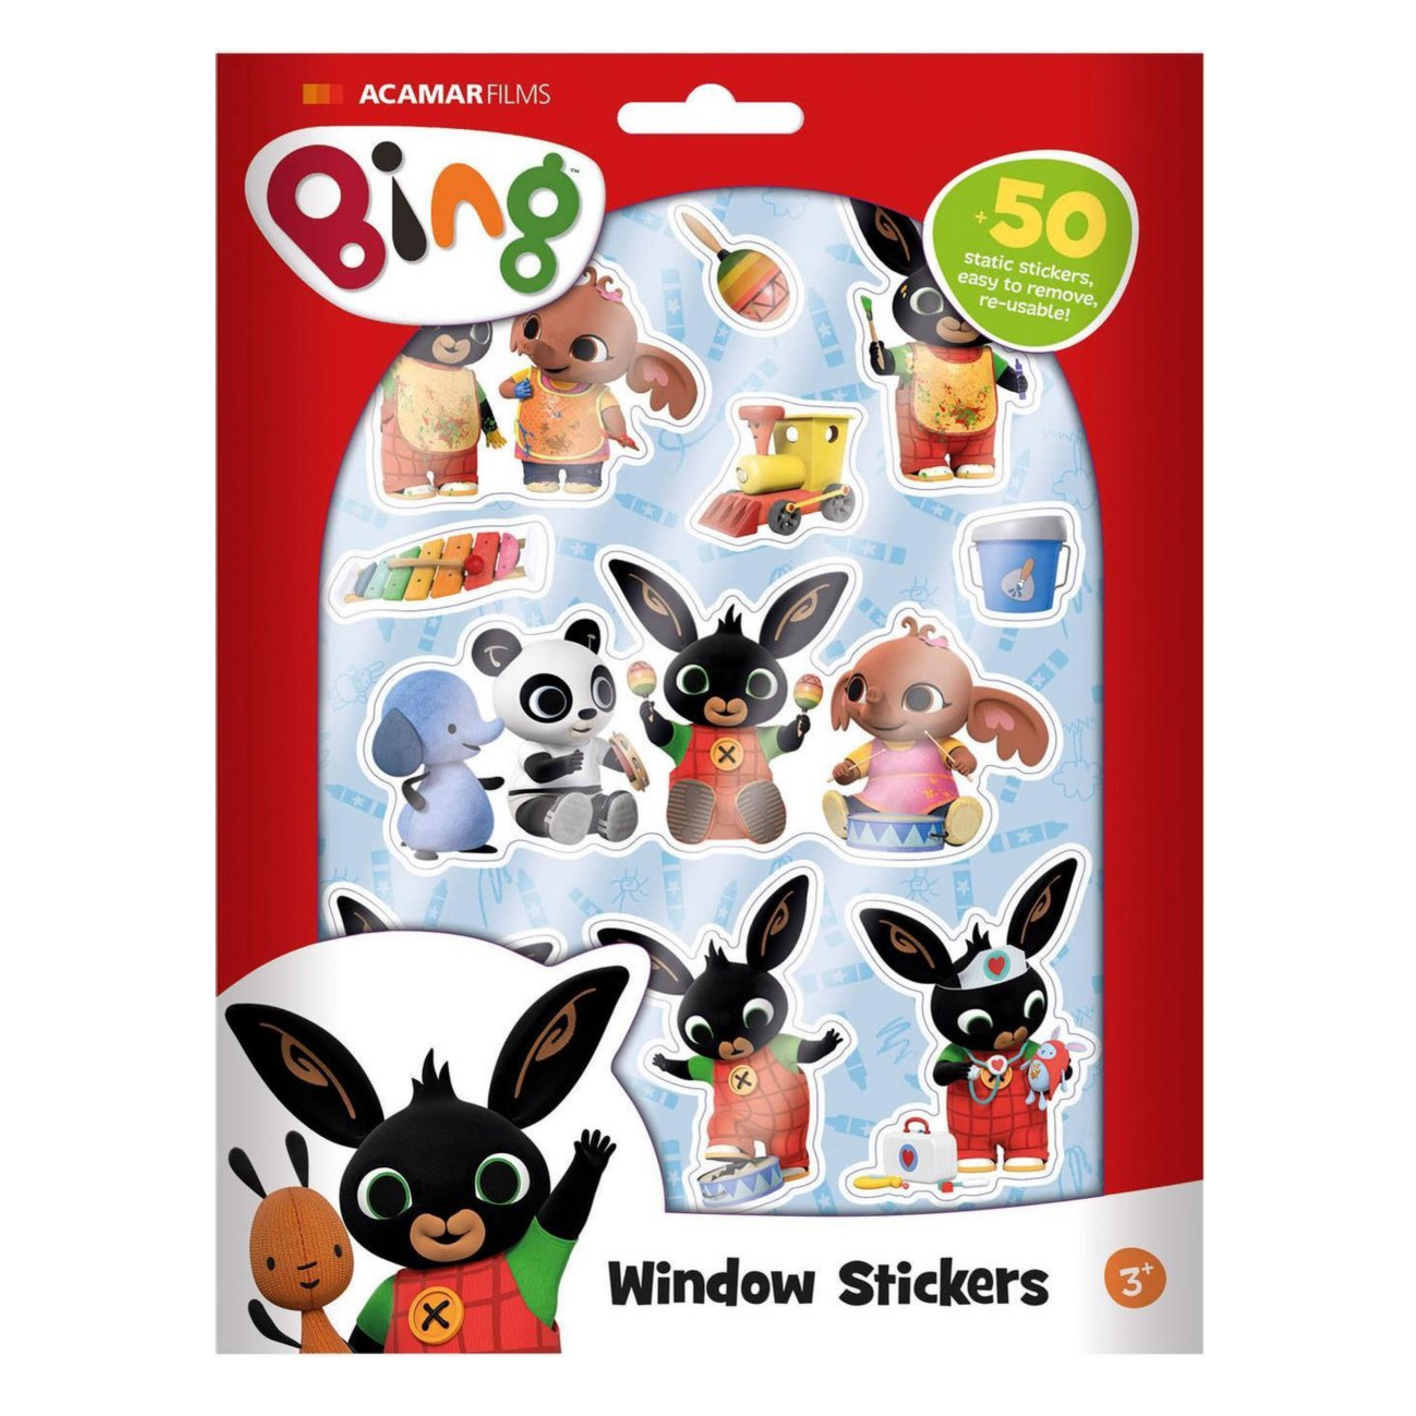 Raamstickers - Bing - in Stickers & Tapes